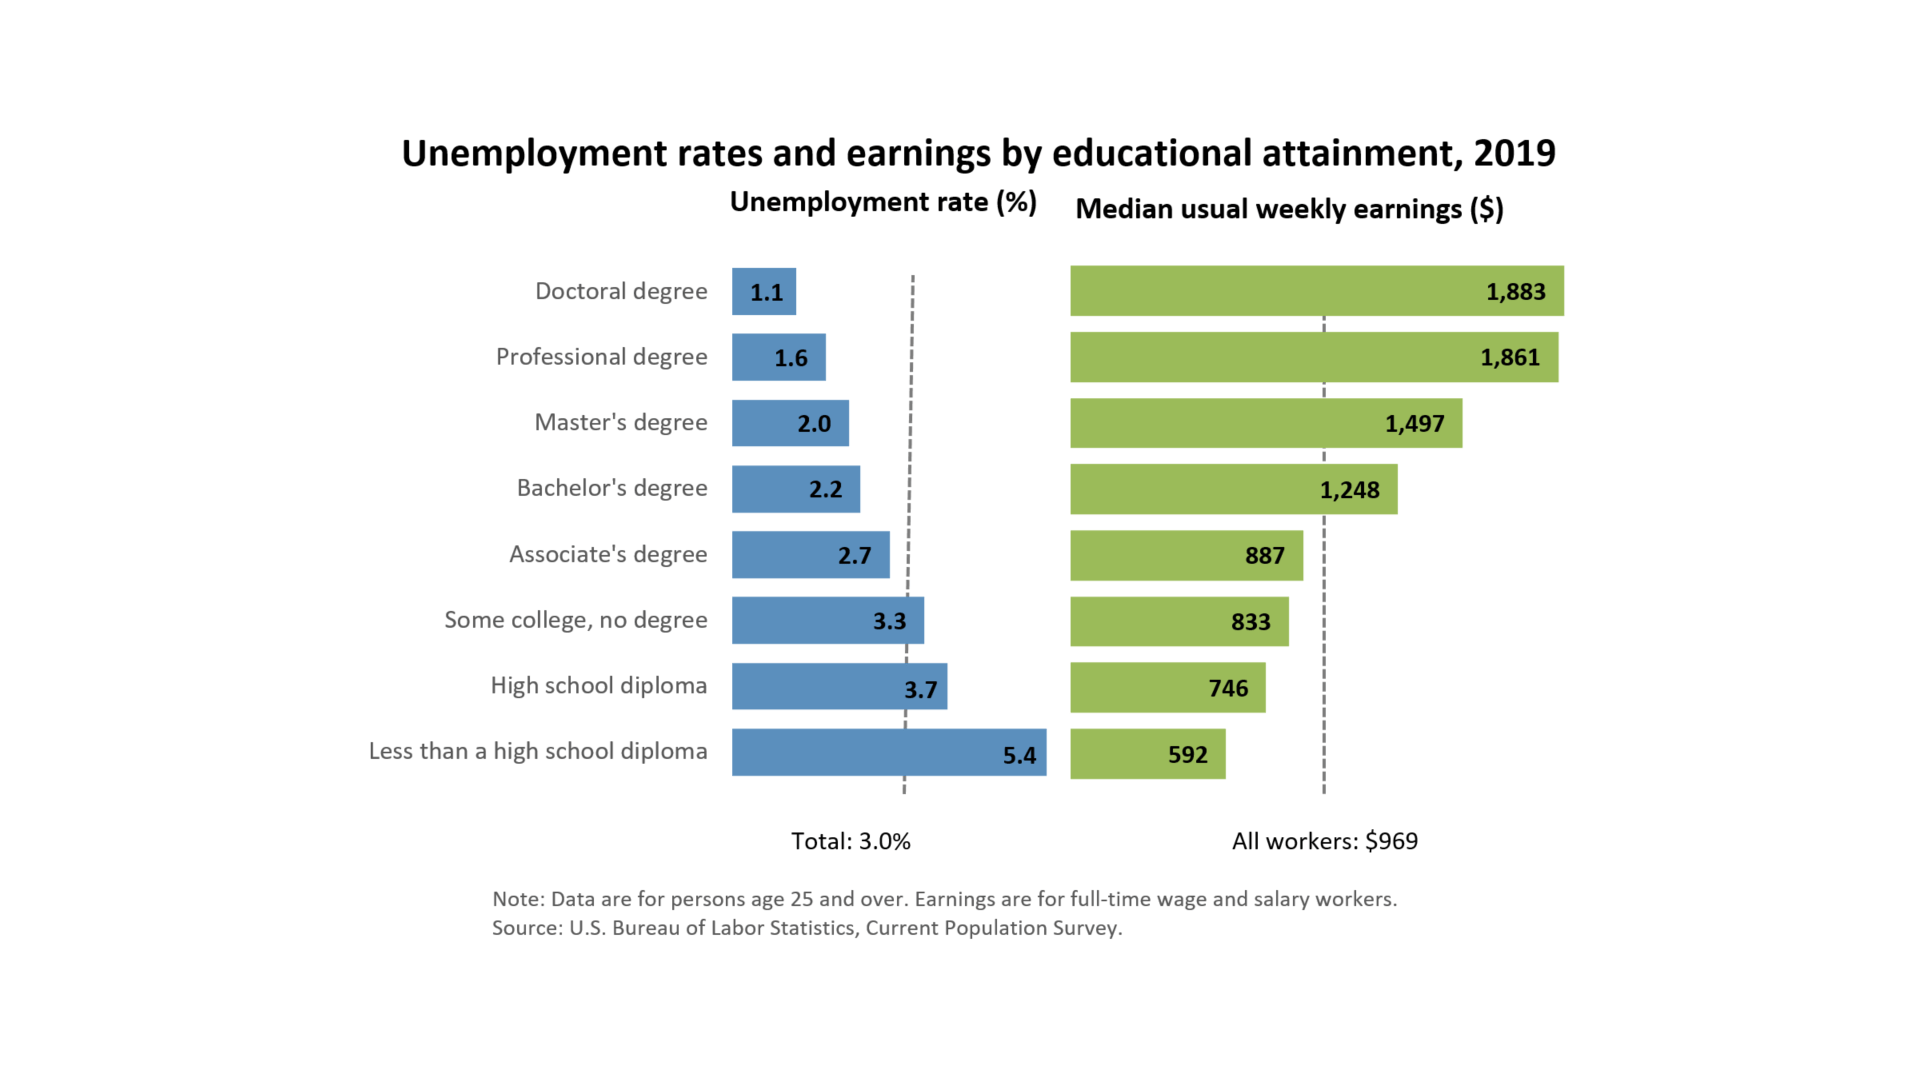 Should I get a Ph.D.? Income and unemployment rates by educational attainment